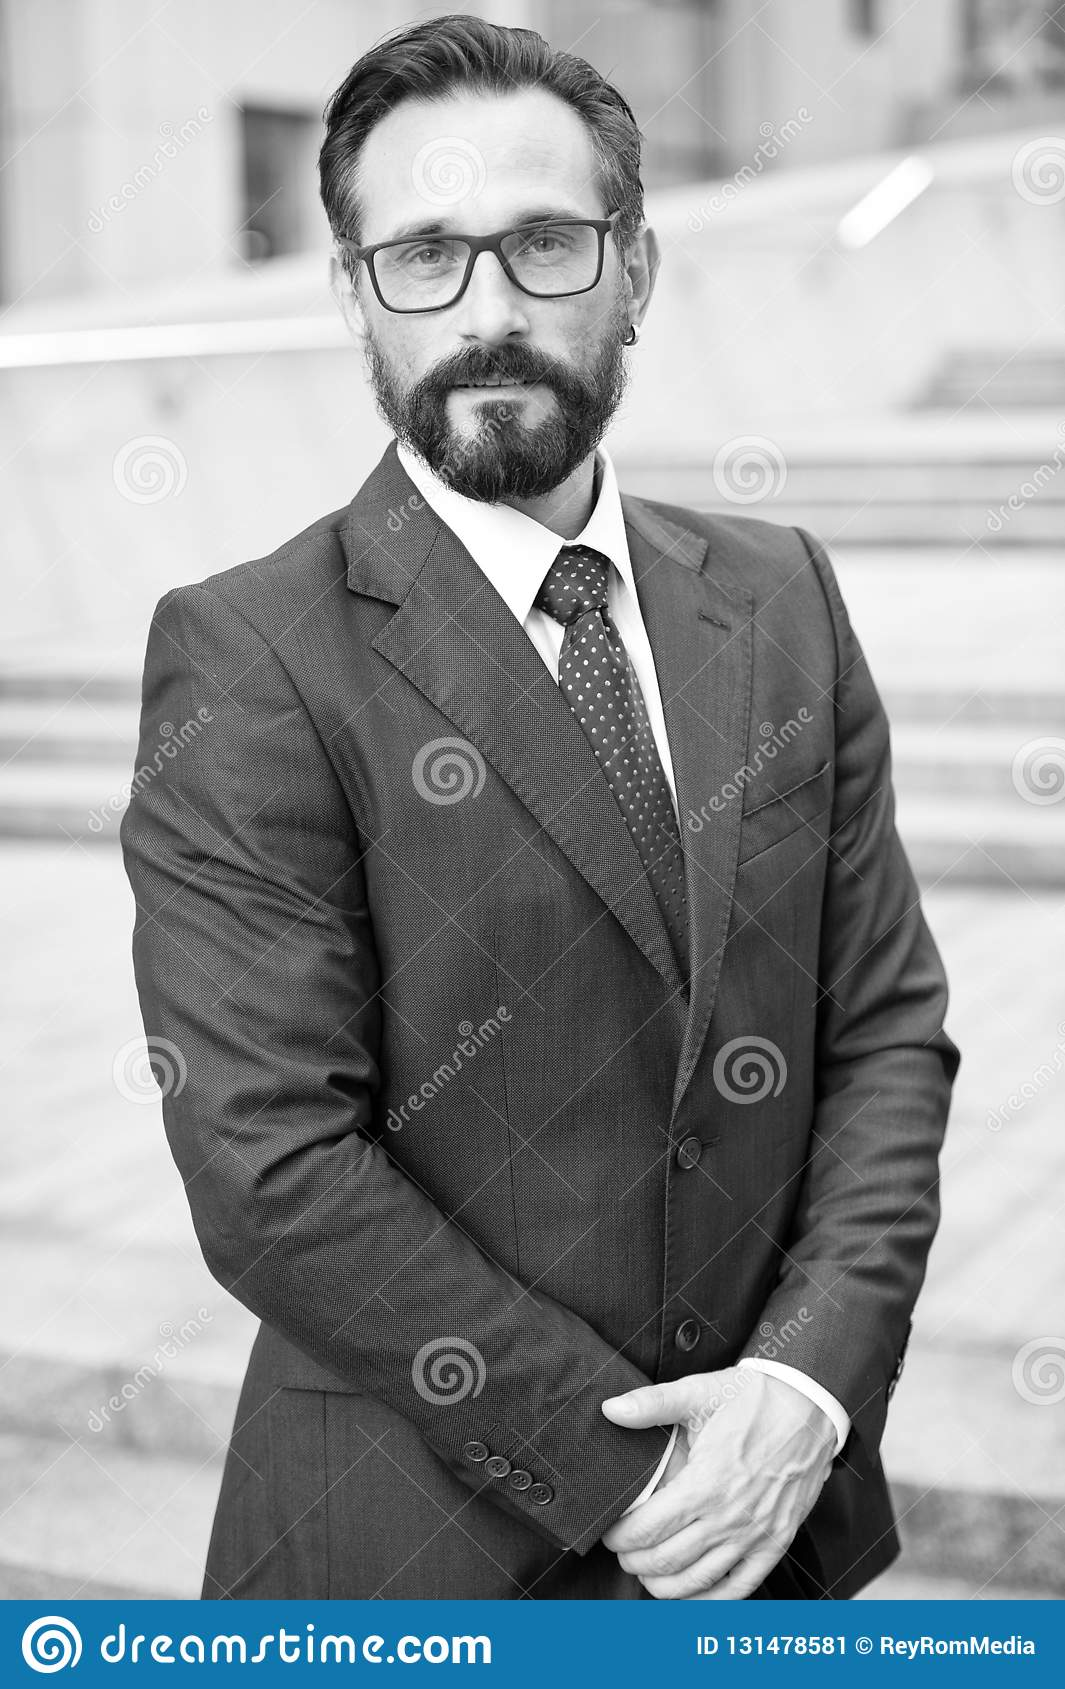 ac415944f9 Businessman outdoor on business center background. Successful business  person black and white portrait. Professional people with beard outdoor  isolated